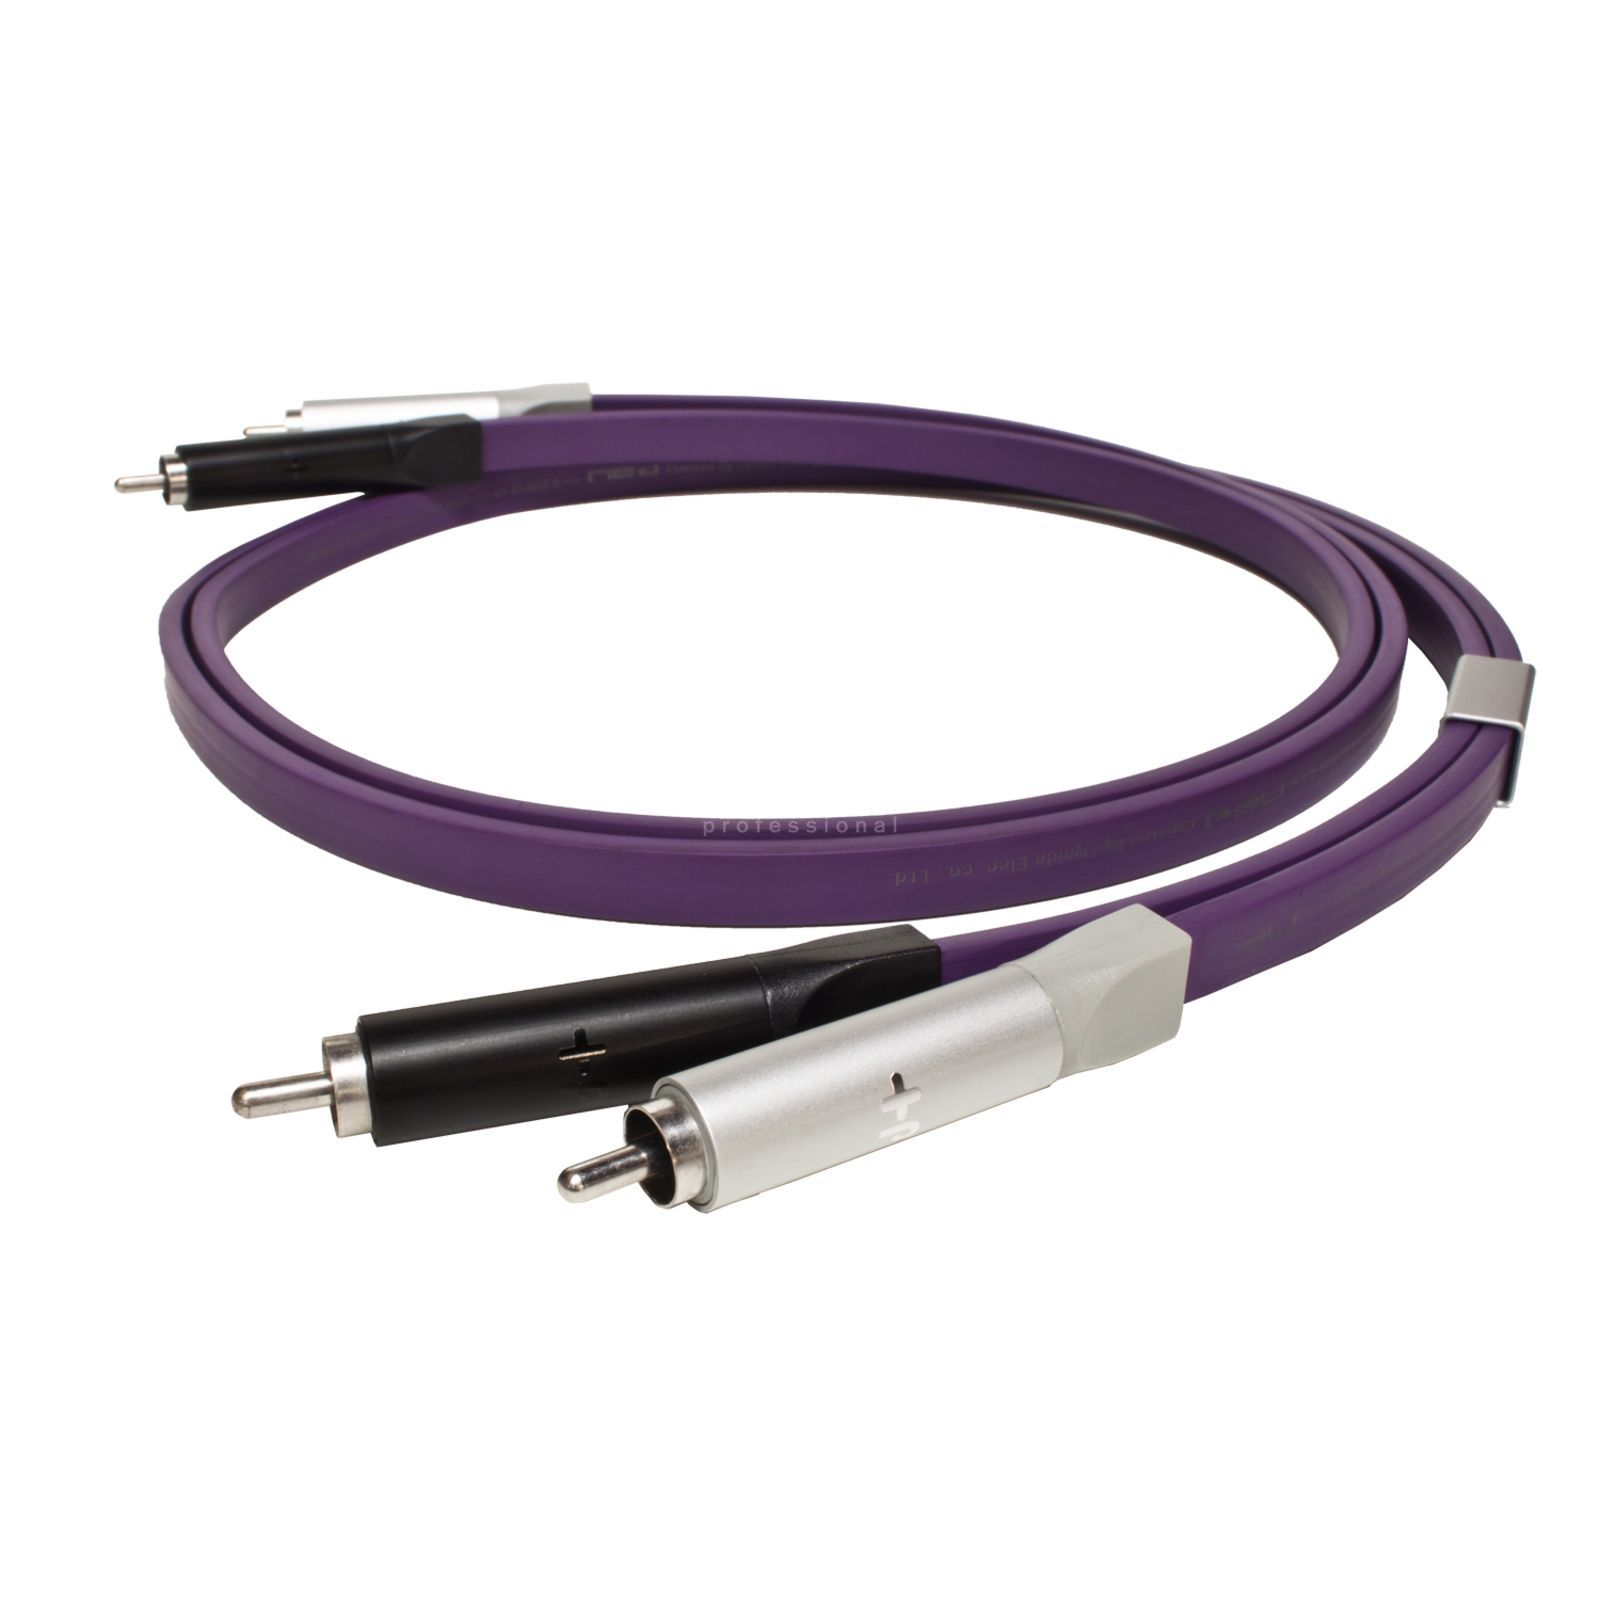 NEO by Oyaide d+ Stereo RCA Cable, Class S 1.0m Length incl. Bag Zdjęcie produktu